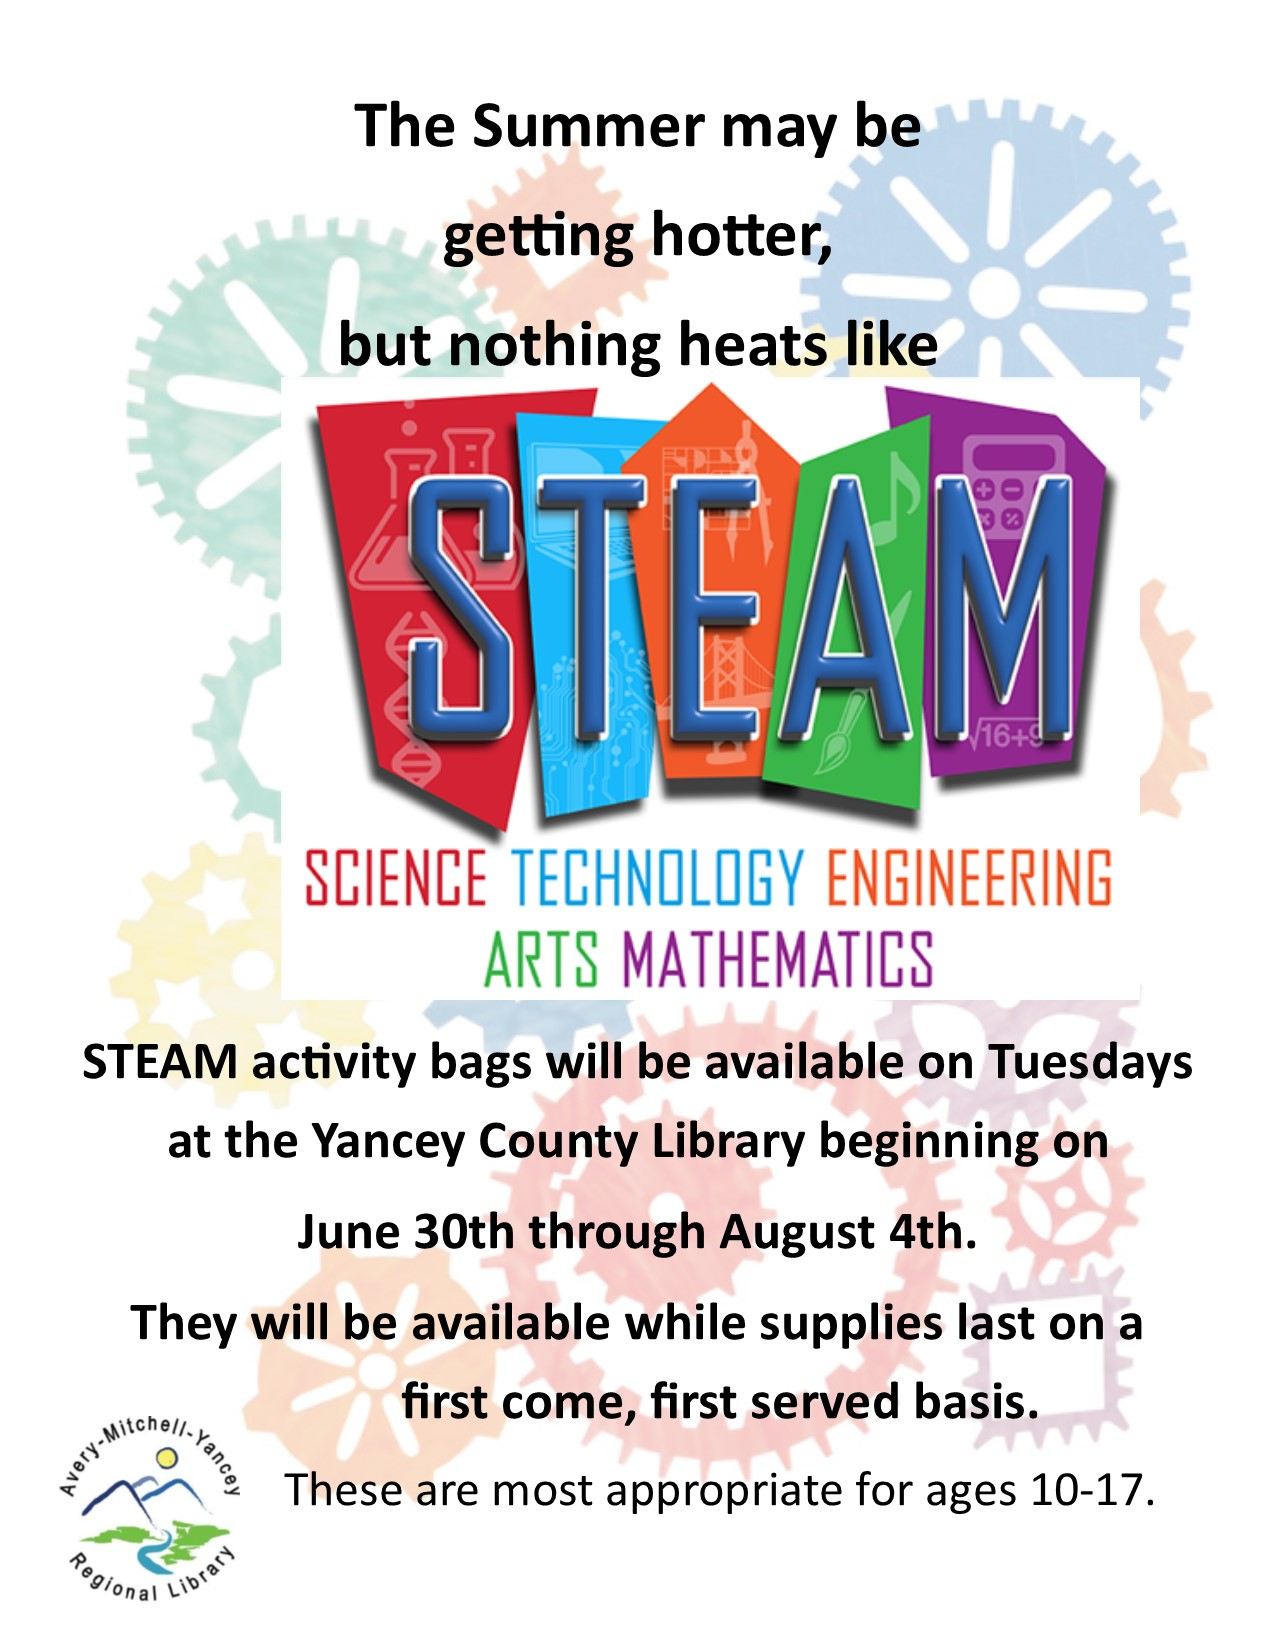 Image of STEAM (Science, Technology, Engineering, Art, and Mathematics) take-it, make-it bags for tweens and teens